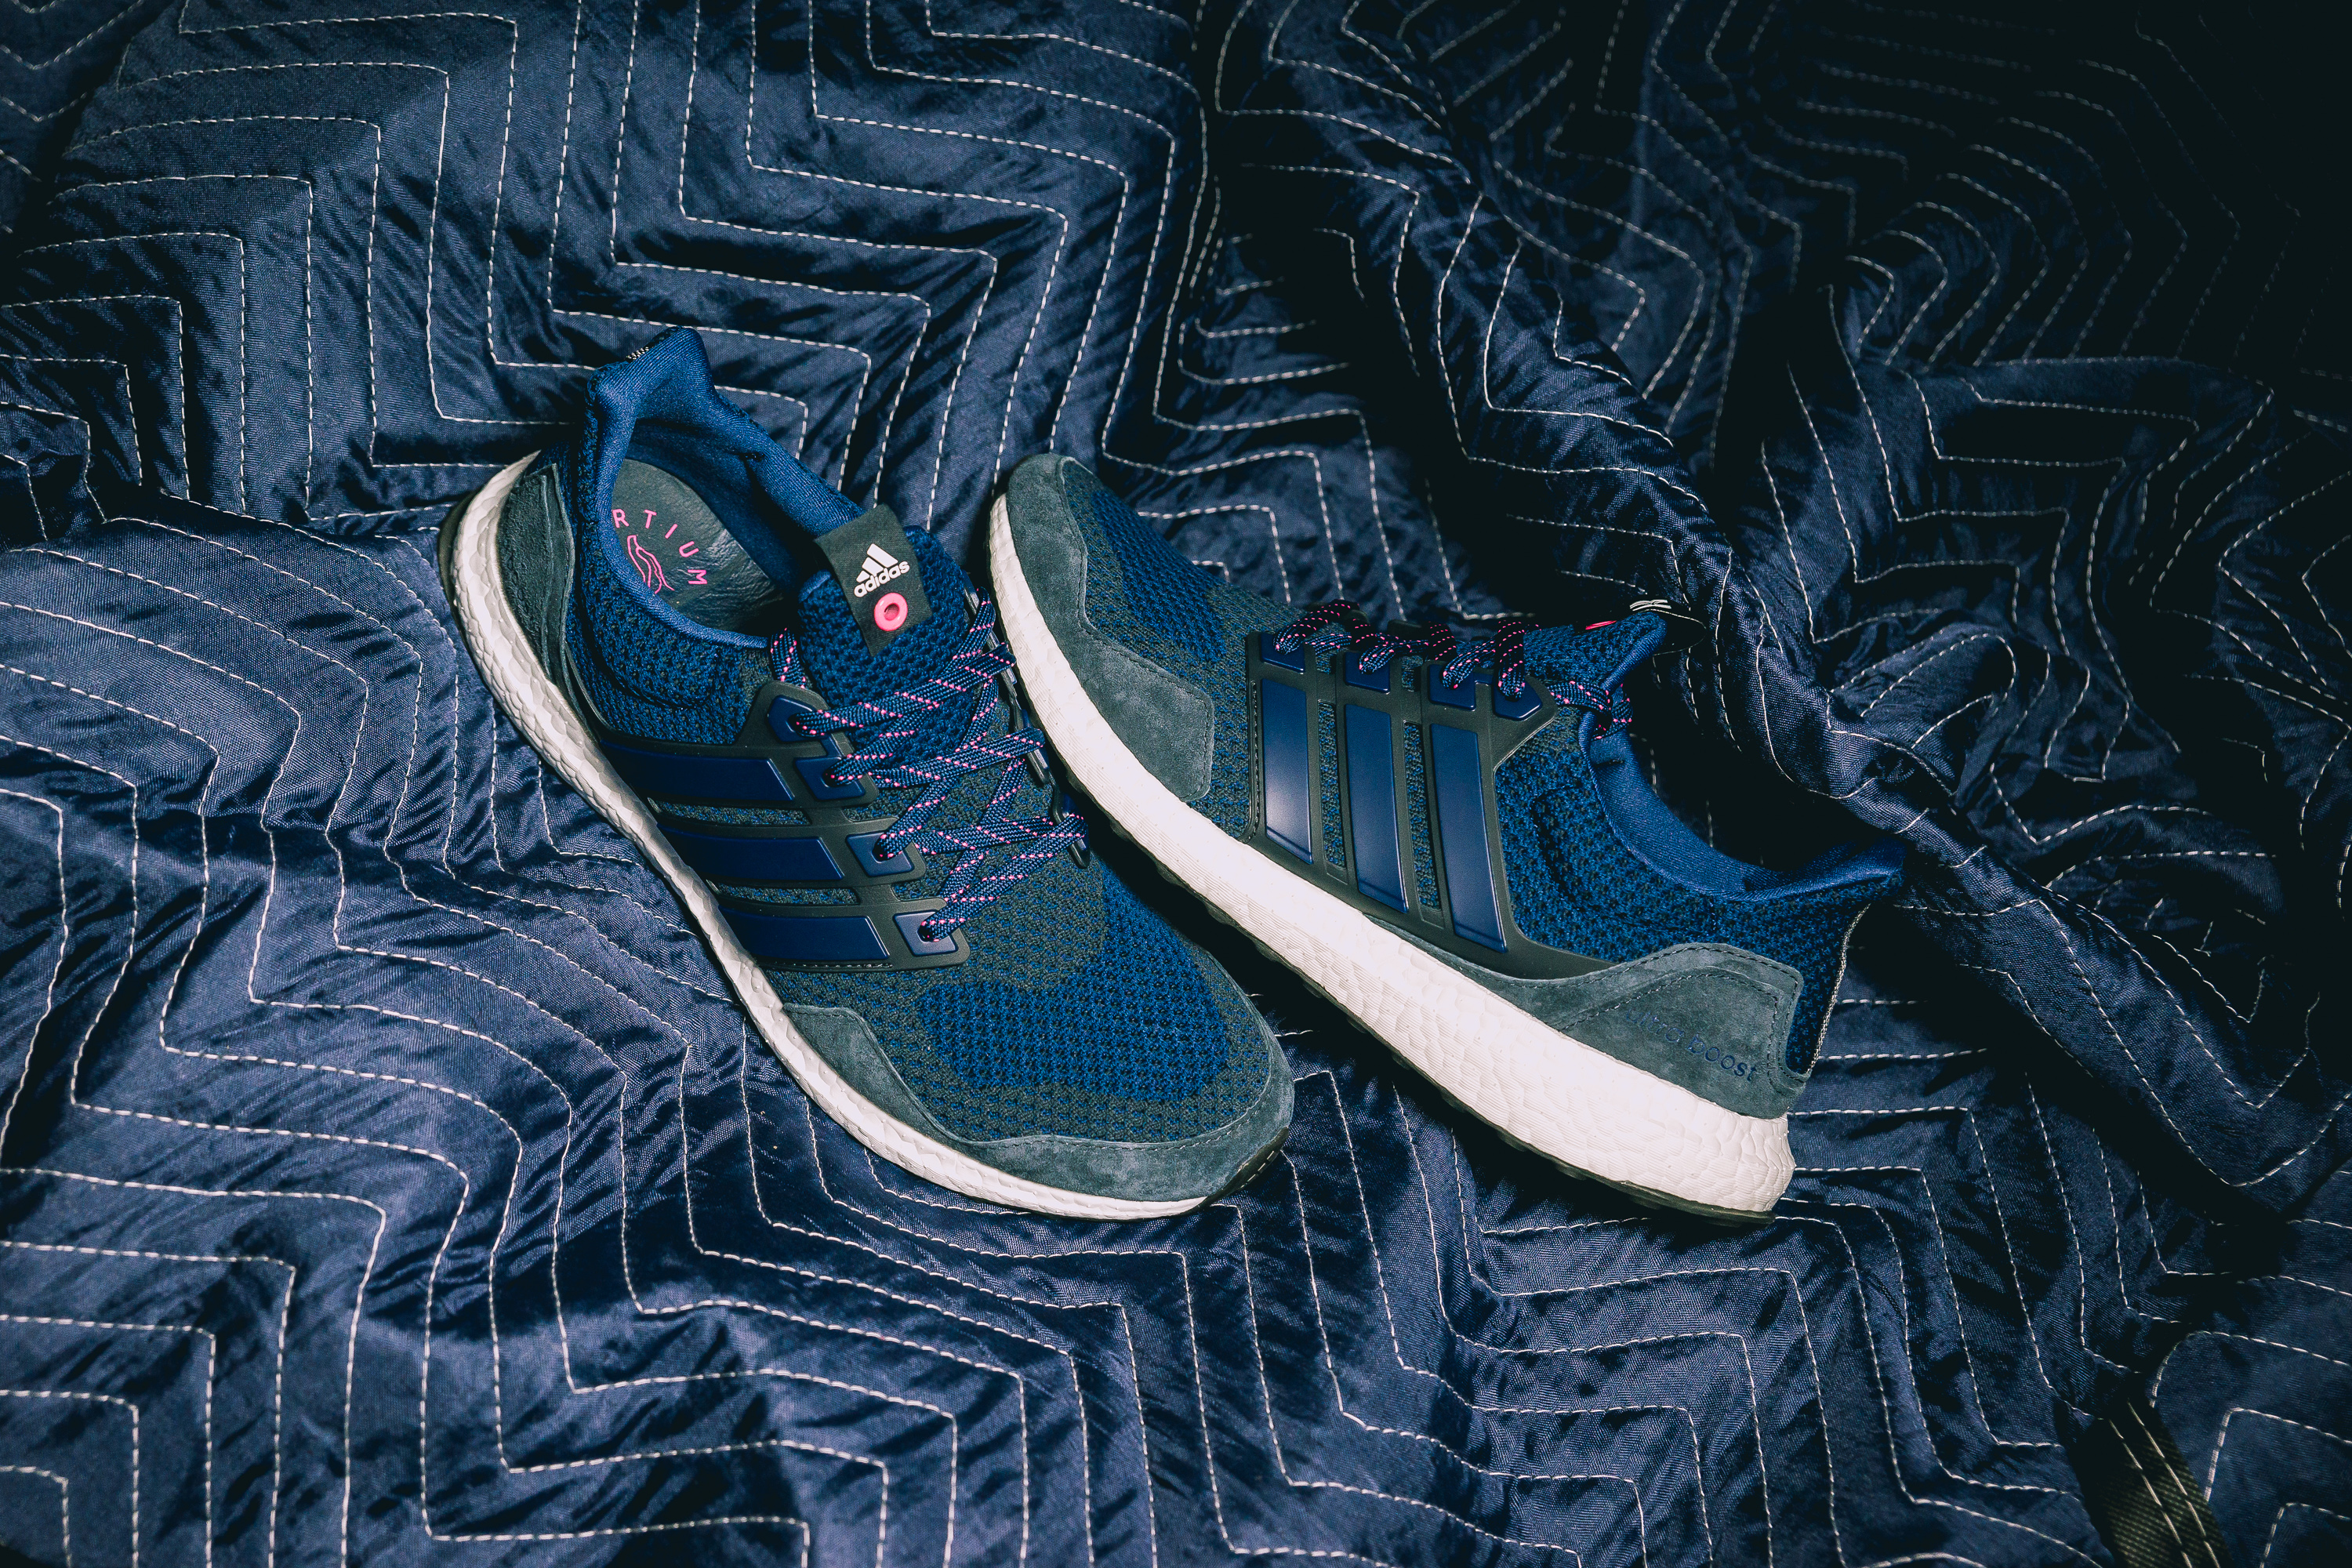 af4f1adccc010 adidas Consortium x Kinfolk – UltraBOOST Collective – PACKER ...